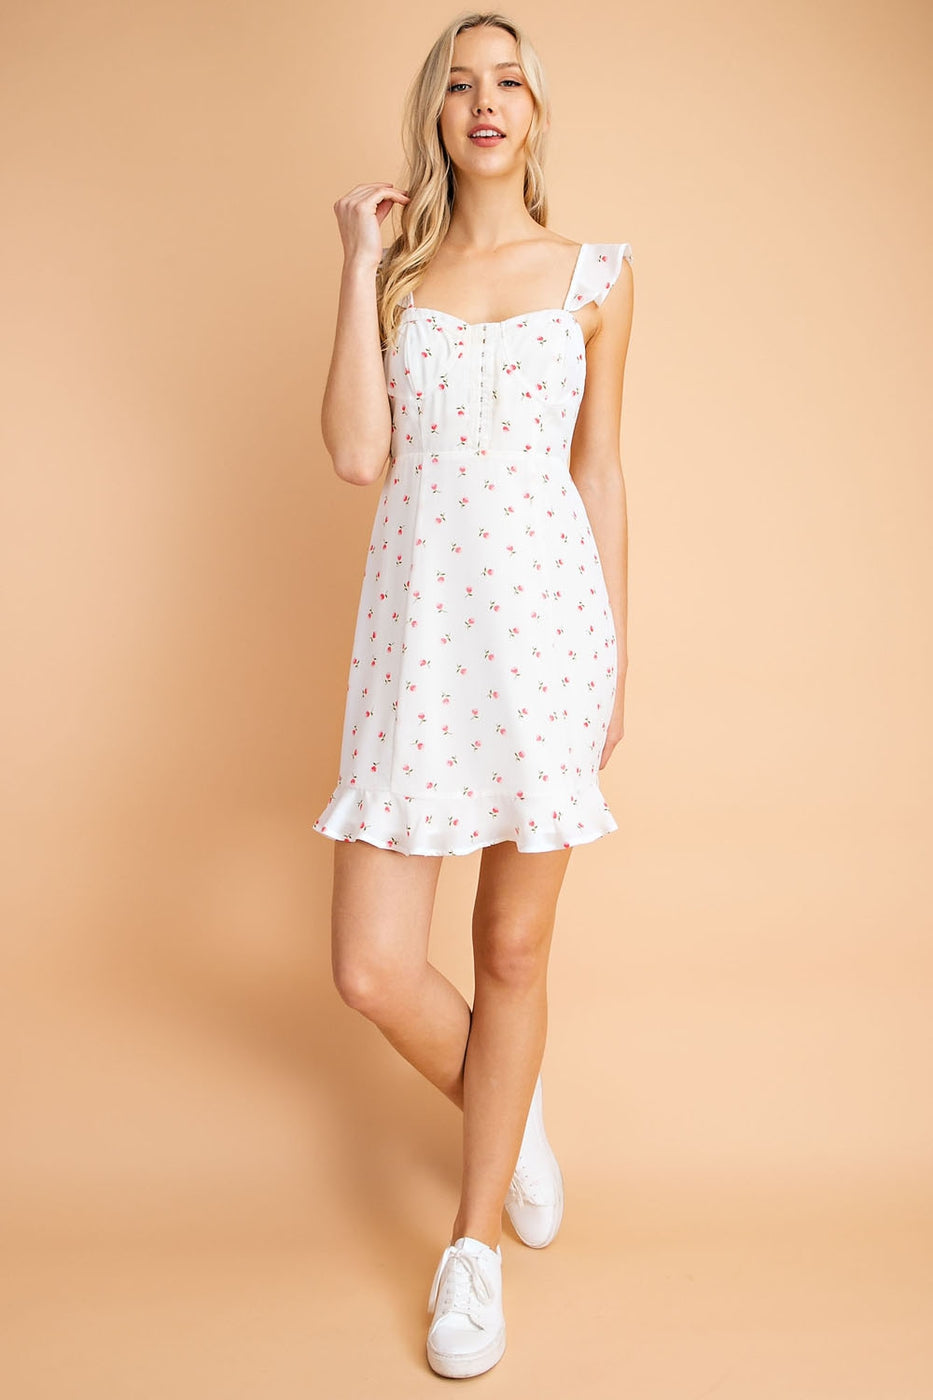 Natalia Mini Floral Dress With Ruffle Strap Corset Top Siin Bees